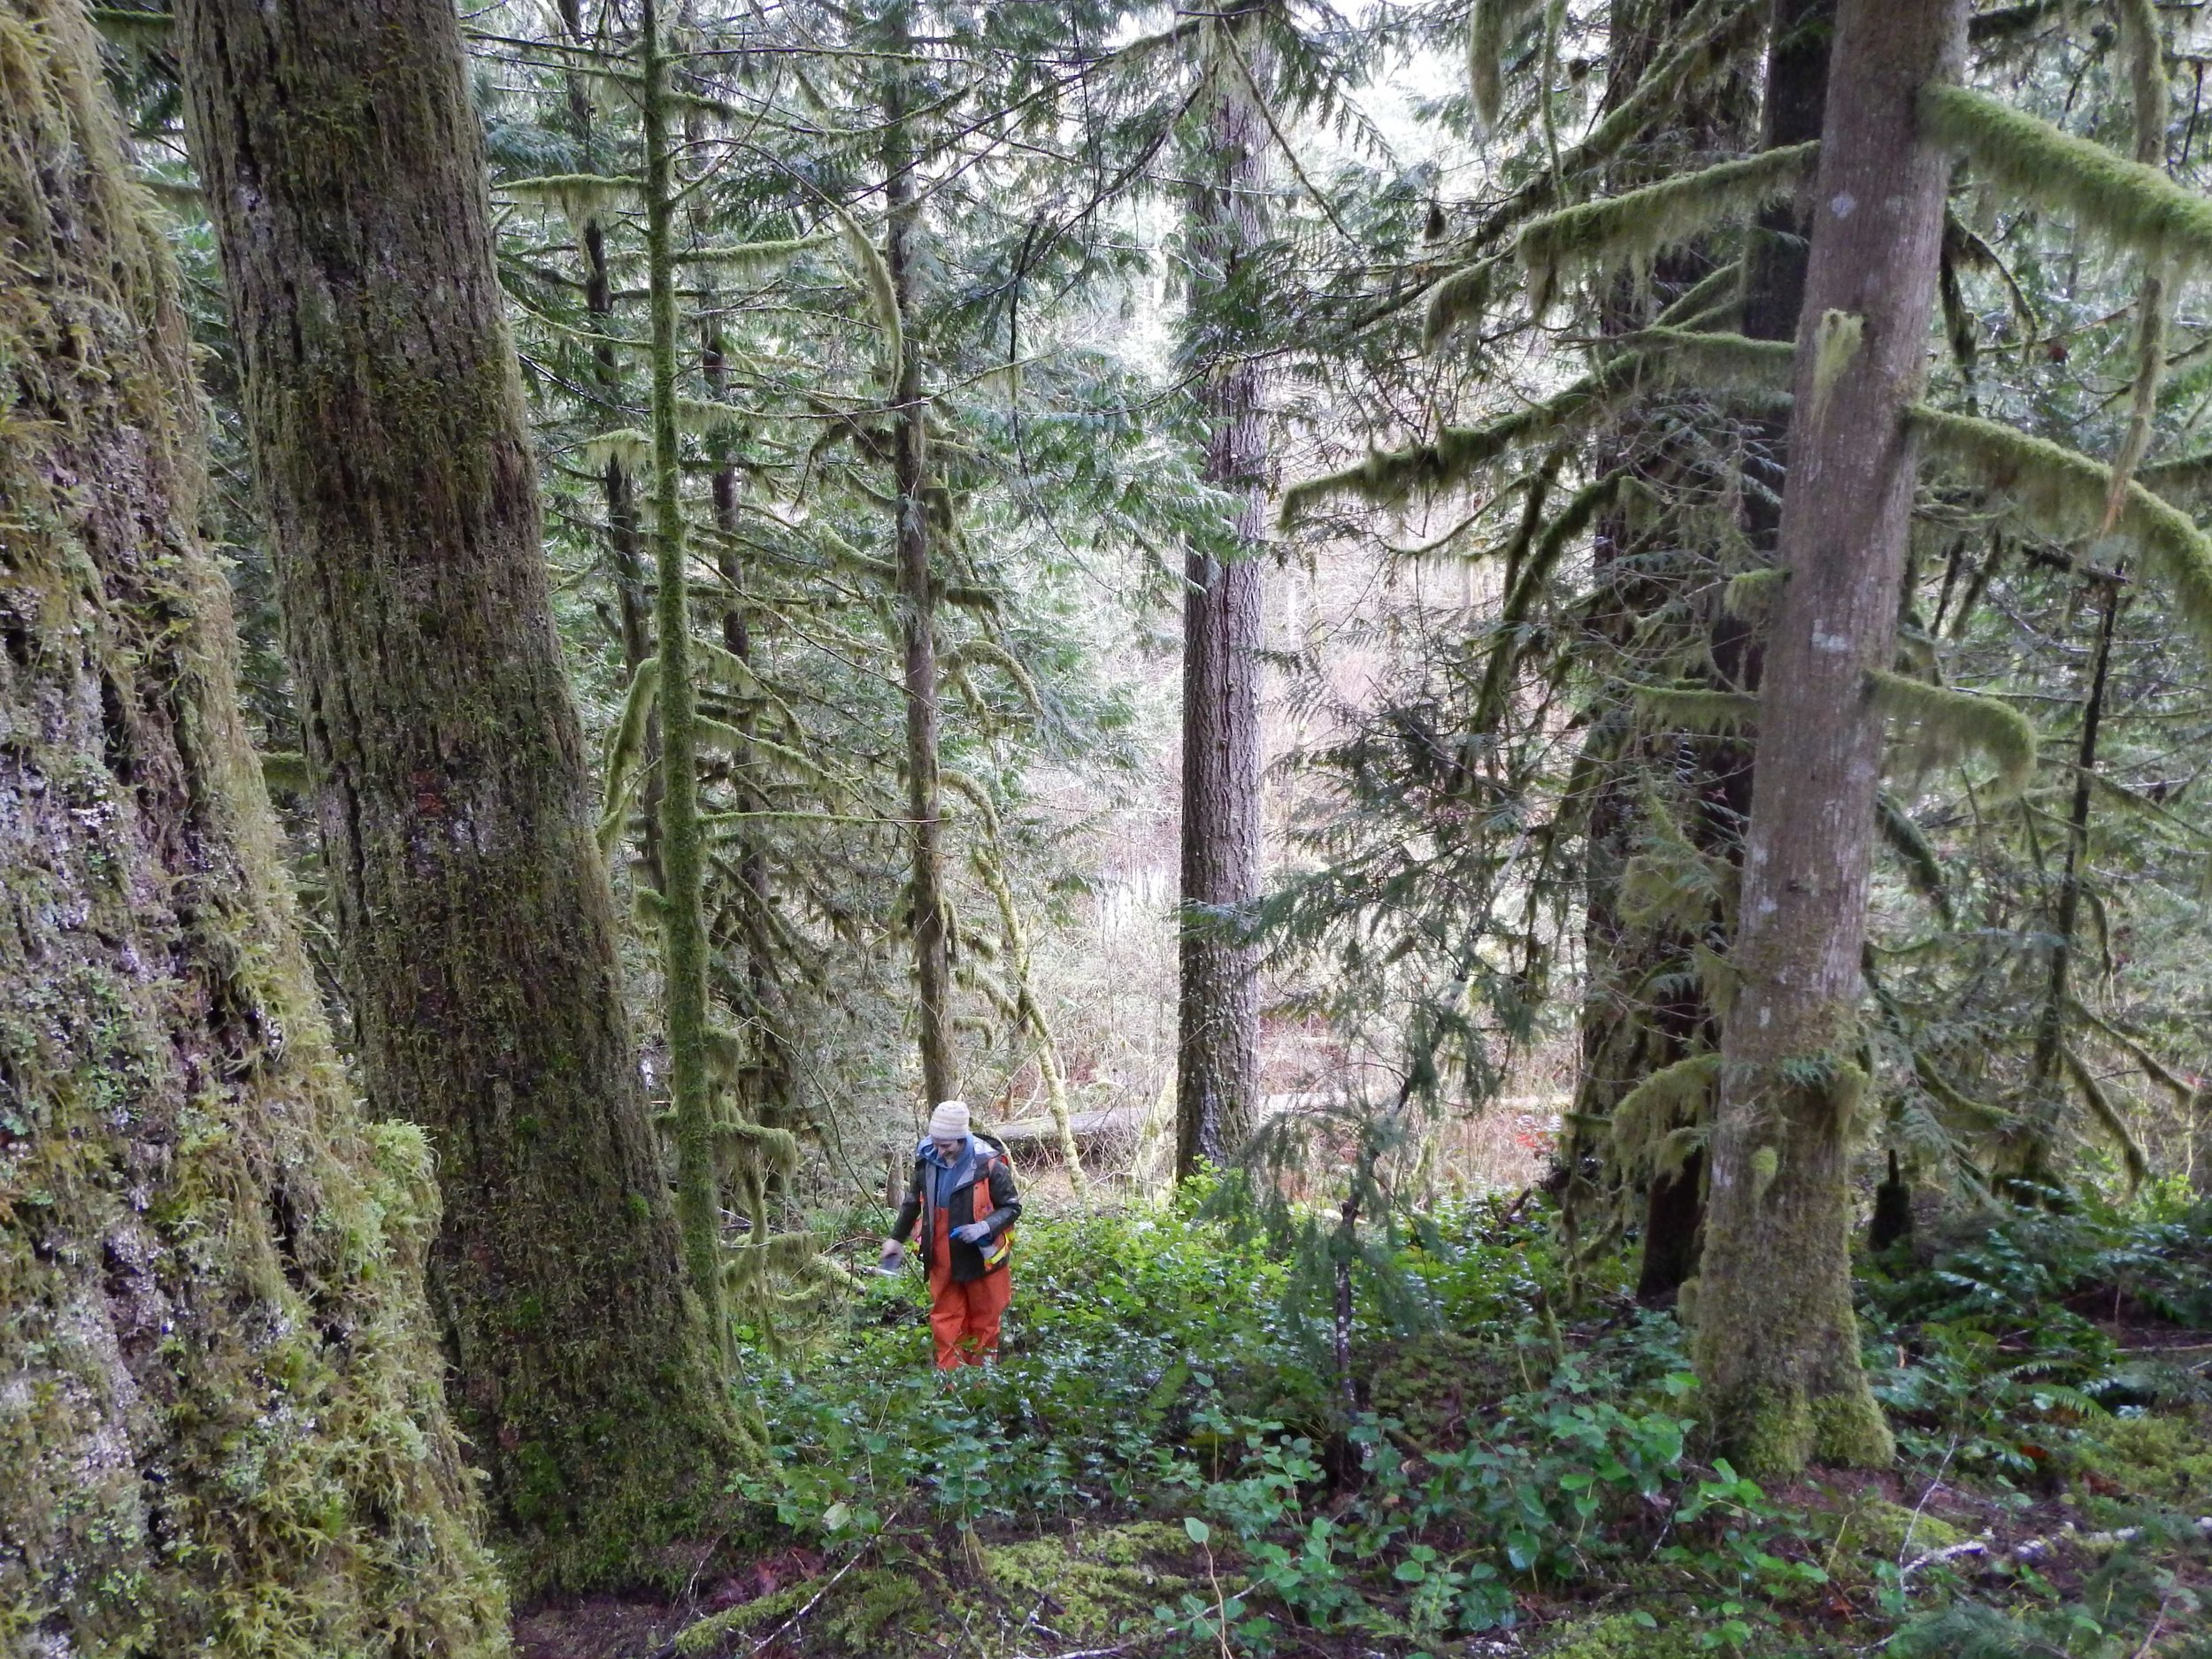 The Watershed Company provided wetland delineation, mitigation planning, and environmental permitting to DNR during the creation of the Darrington Trail.